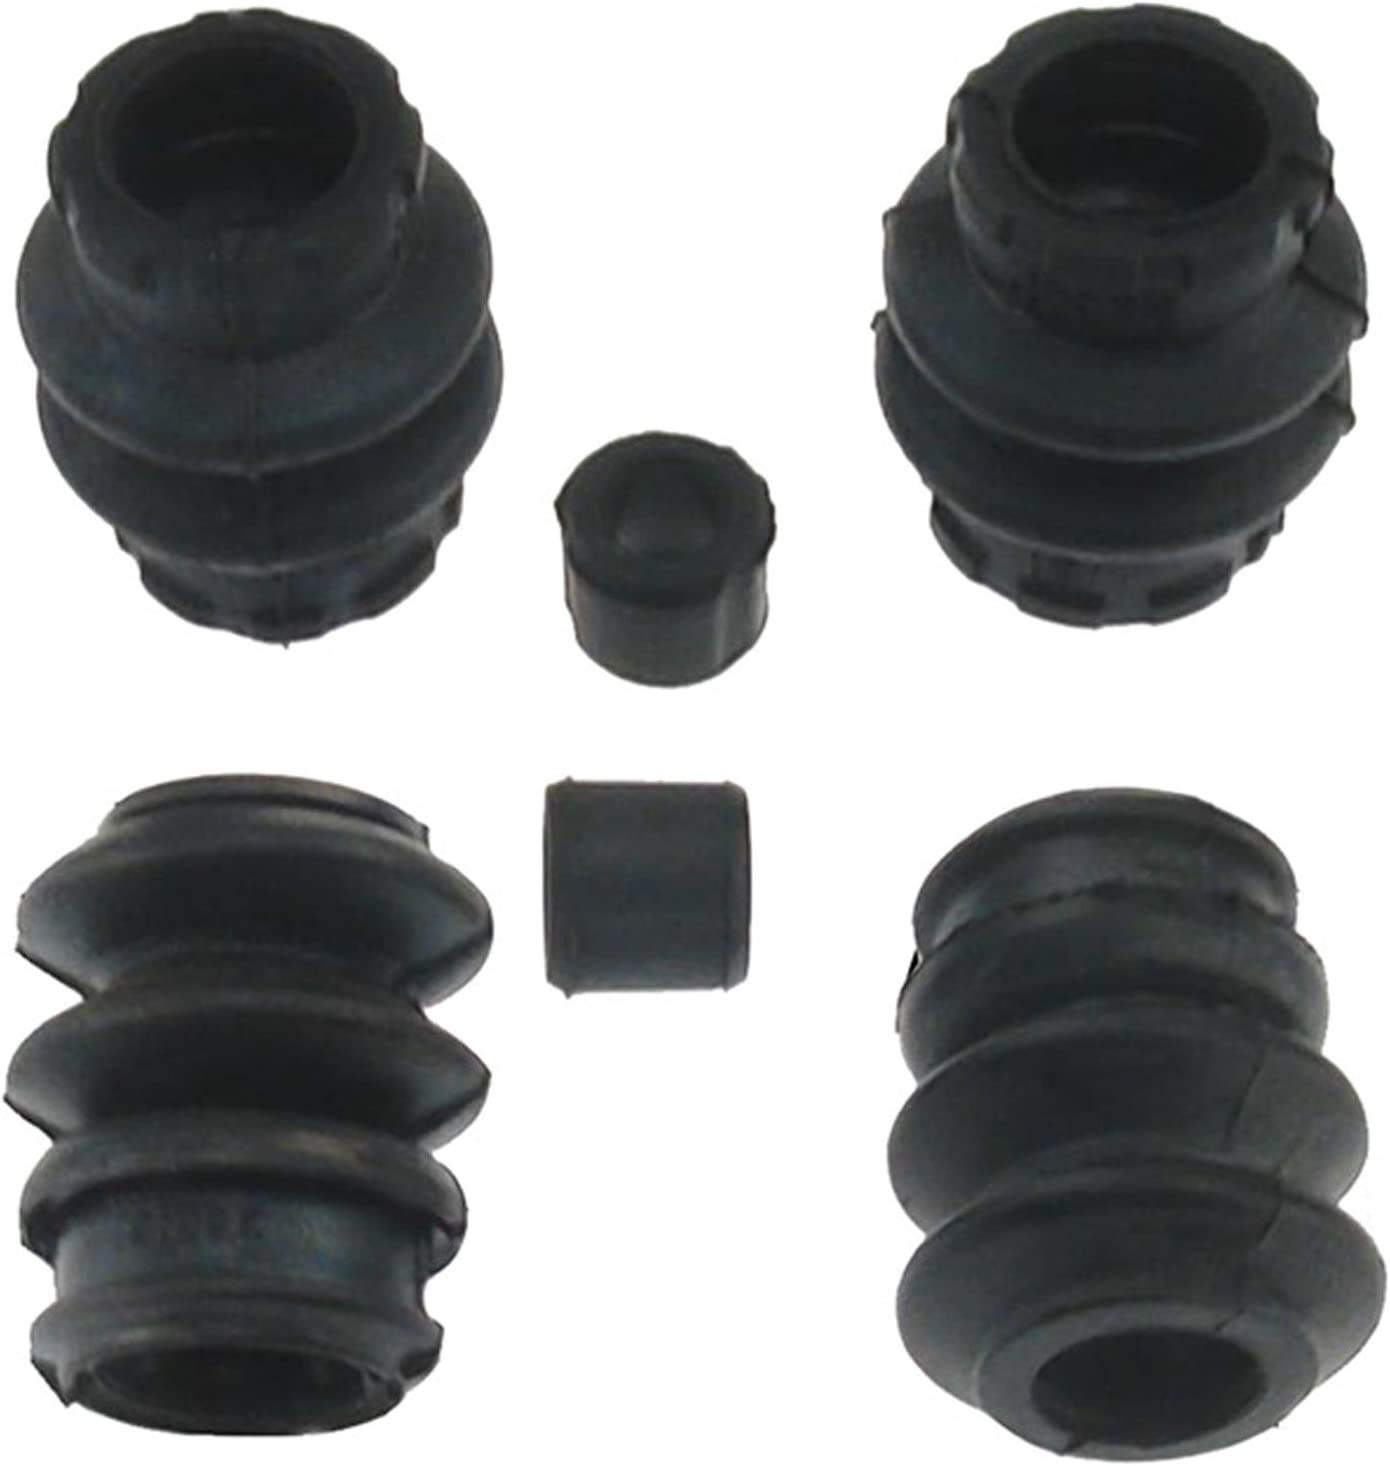 ACDelco 18K1935 Professional Front Disc Brake Caliper Rubber Bushing Kit with Seals and Bushings